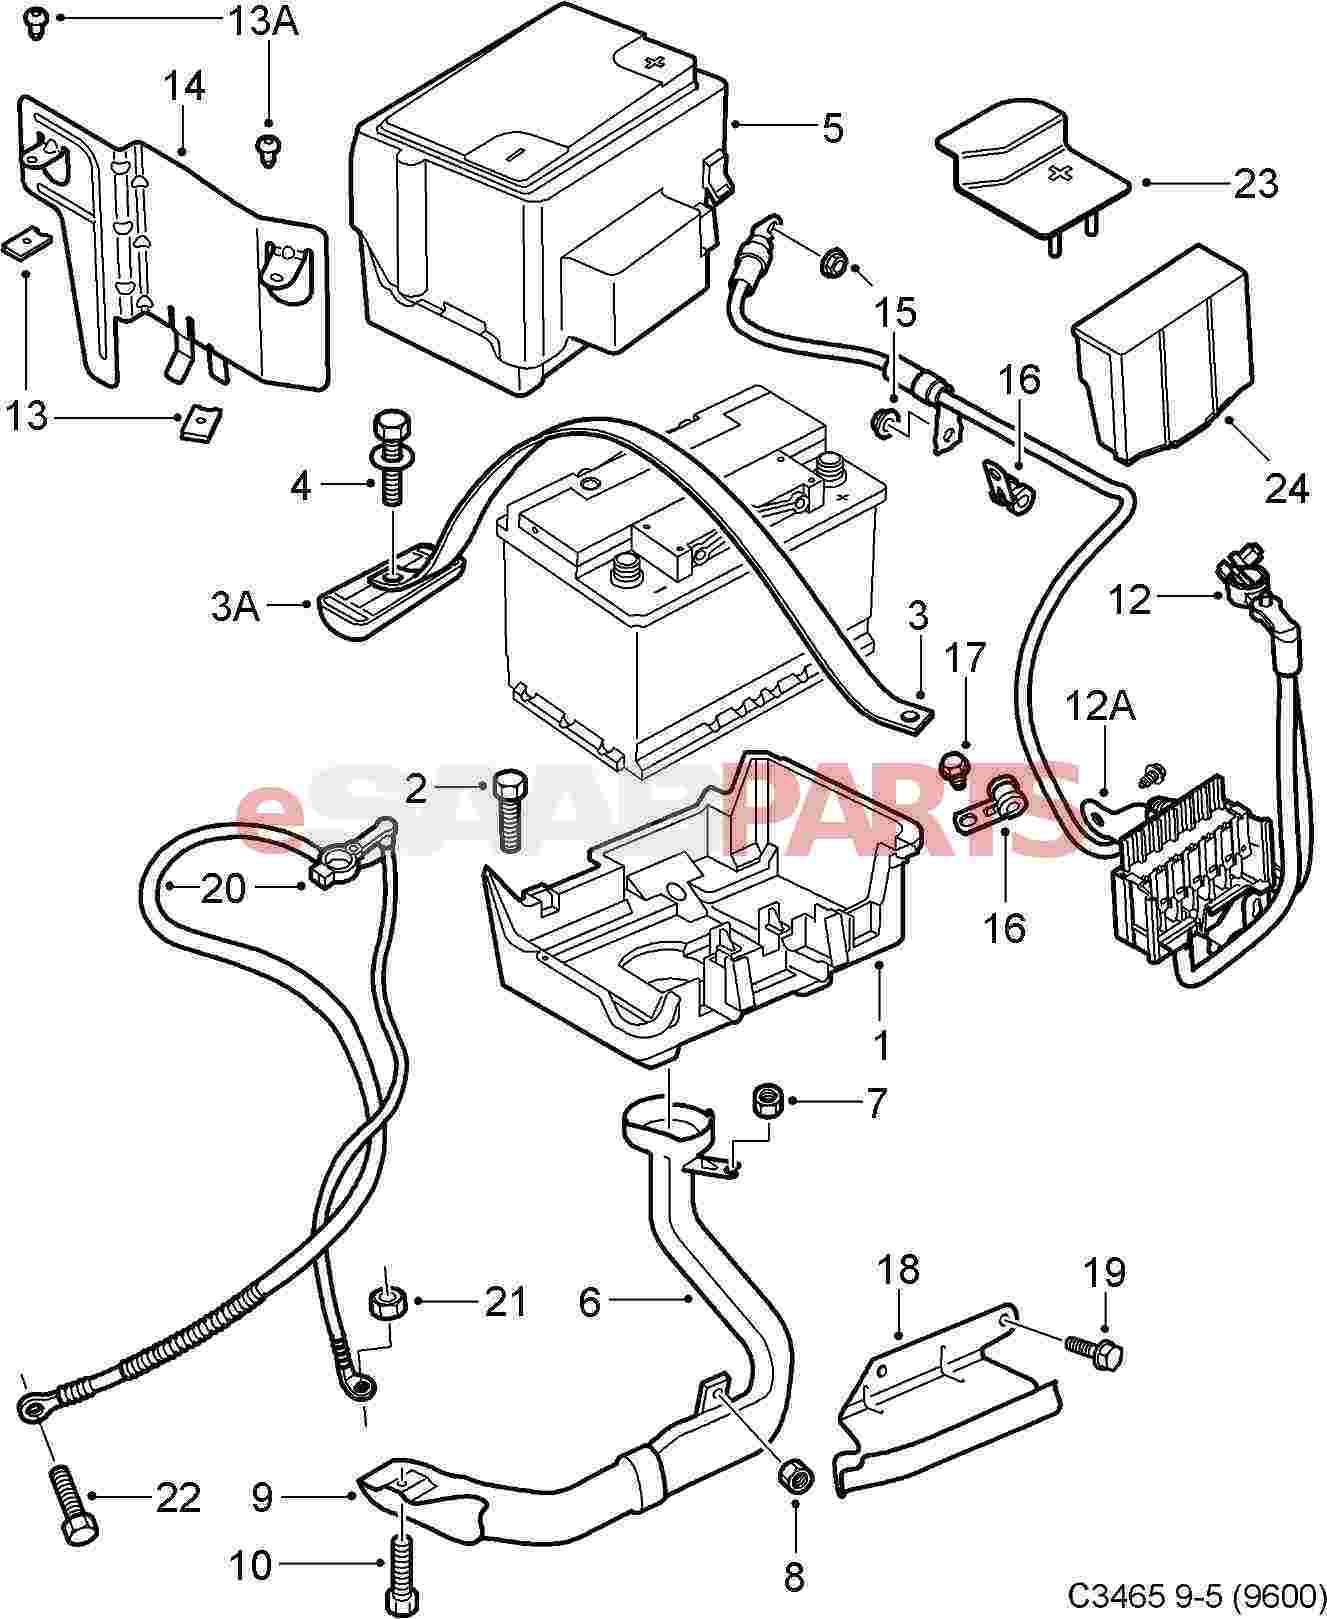 12755254 saab positive battery cable automatic trans 2002 2009 9 rh esaabparts saab 9 5 aftermarket parts diagram of exhaust system 2001 saab 9 5